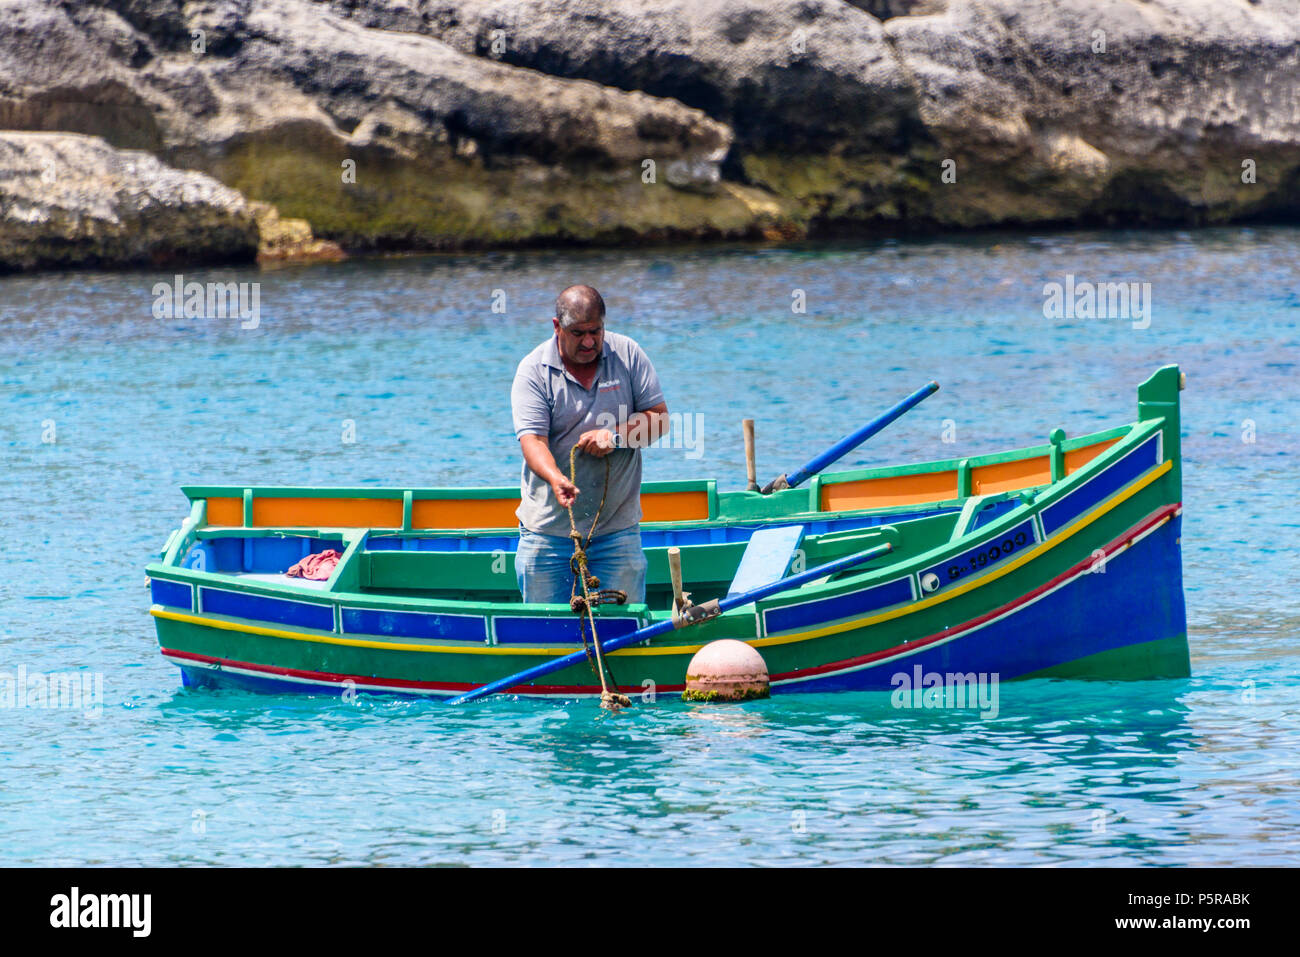 A fisherman rows his traditional Maltese rowing boat out in Xlendi bay to collect lobster cages. - Stock Image